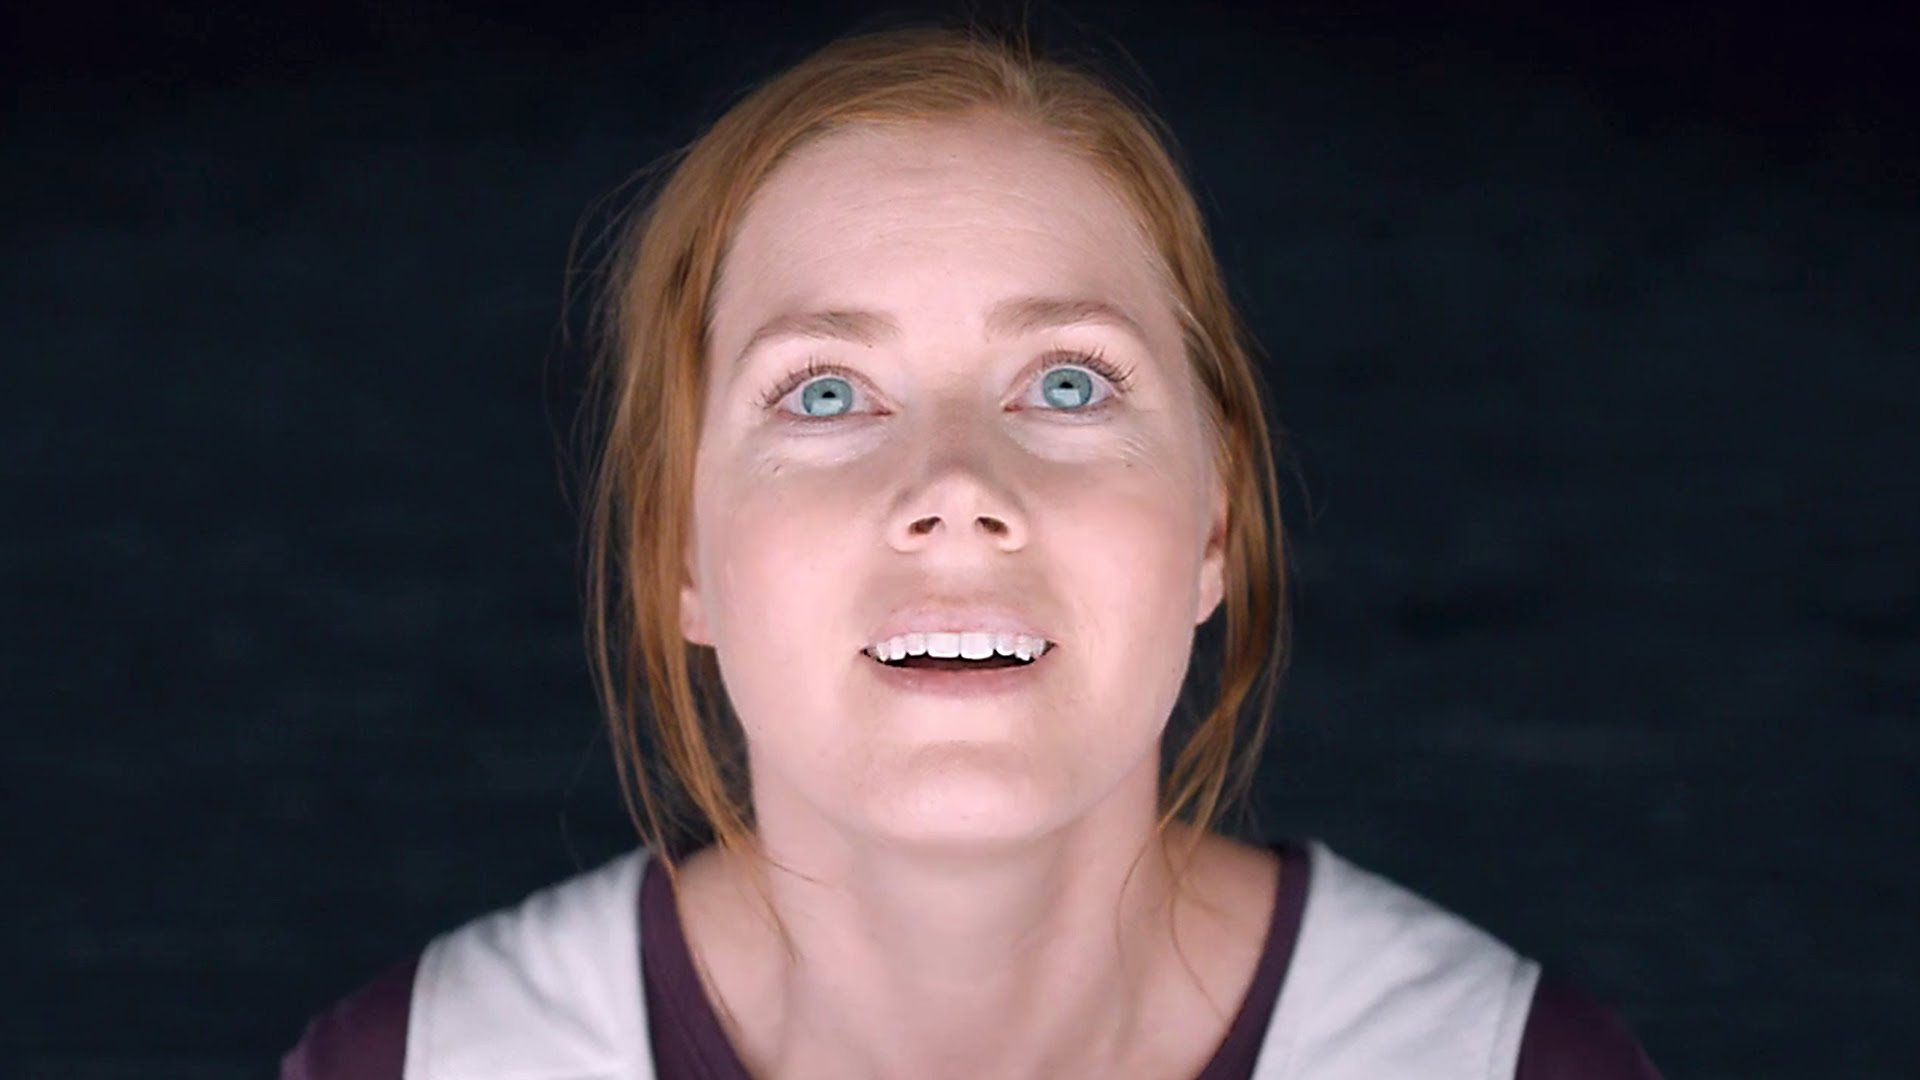 Arrival is a stunning science fiction movie with deep implications for today